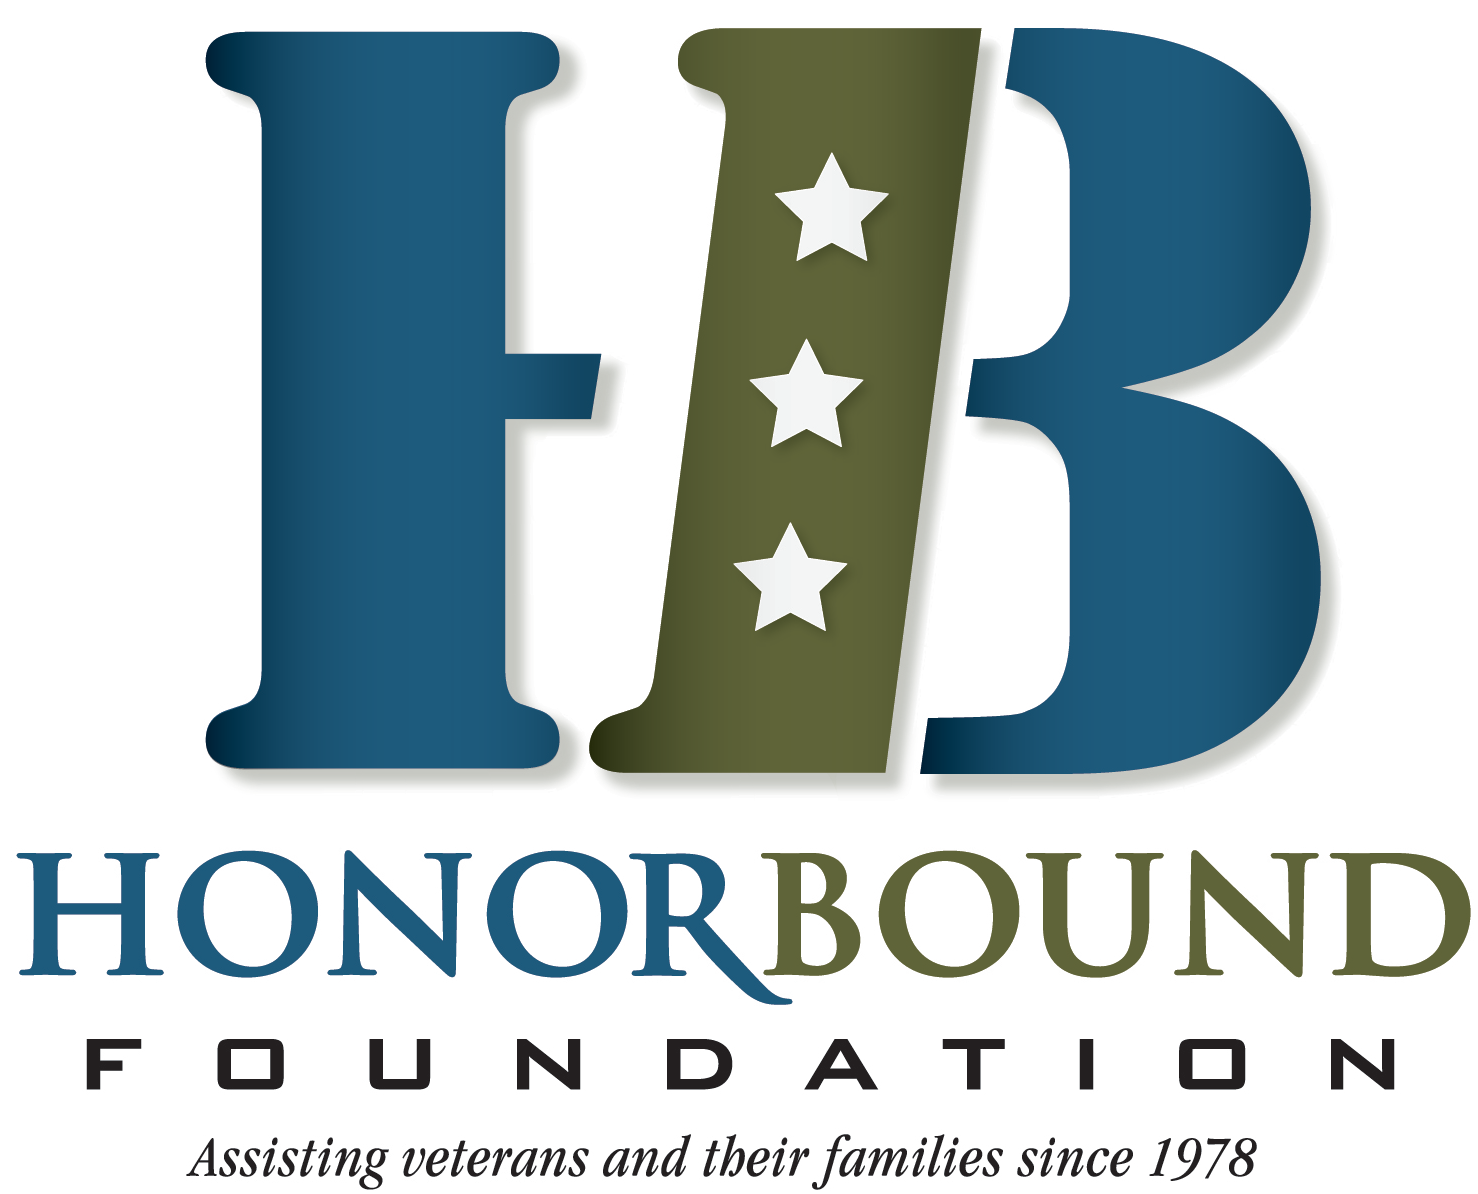 District Of Columbia Car Donations - HonorBound Foundation - DonatecarUSA.com